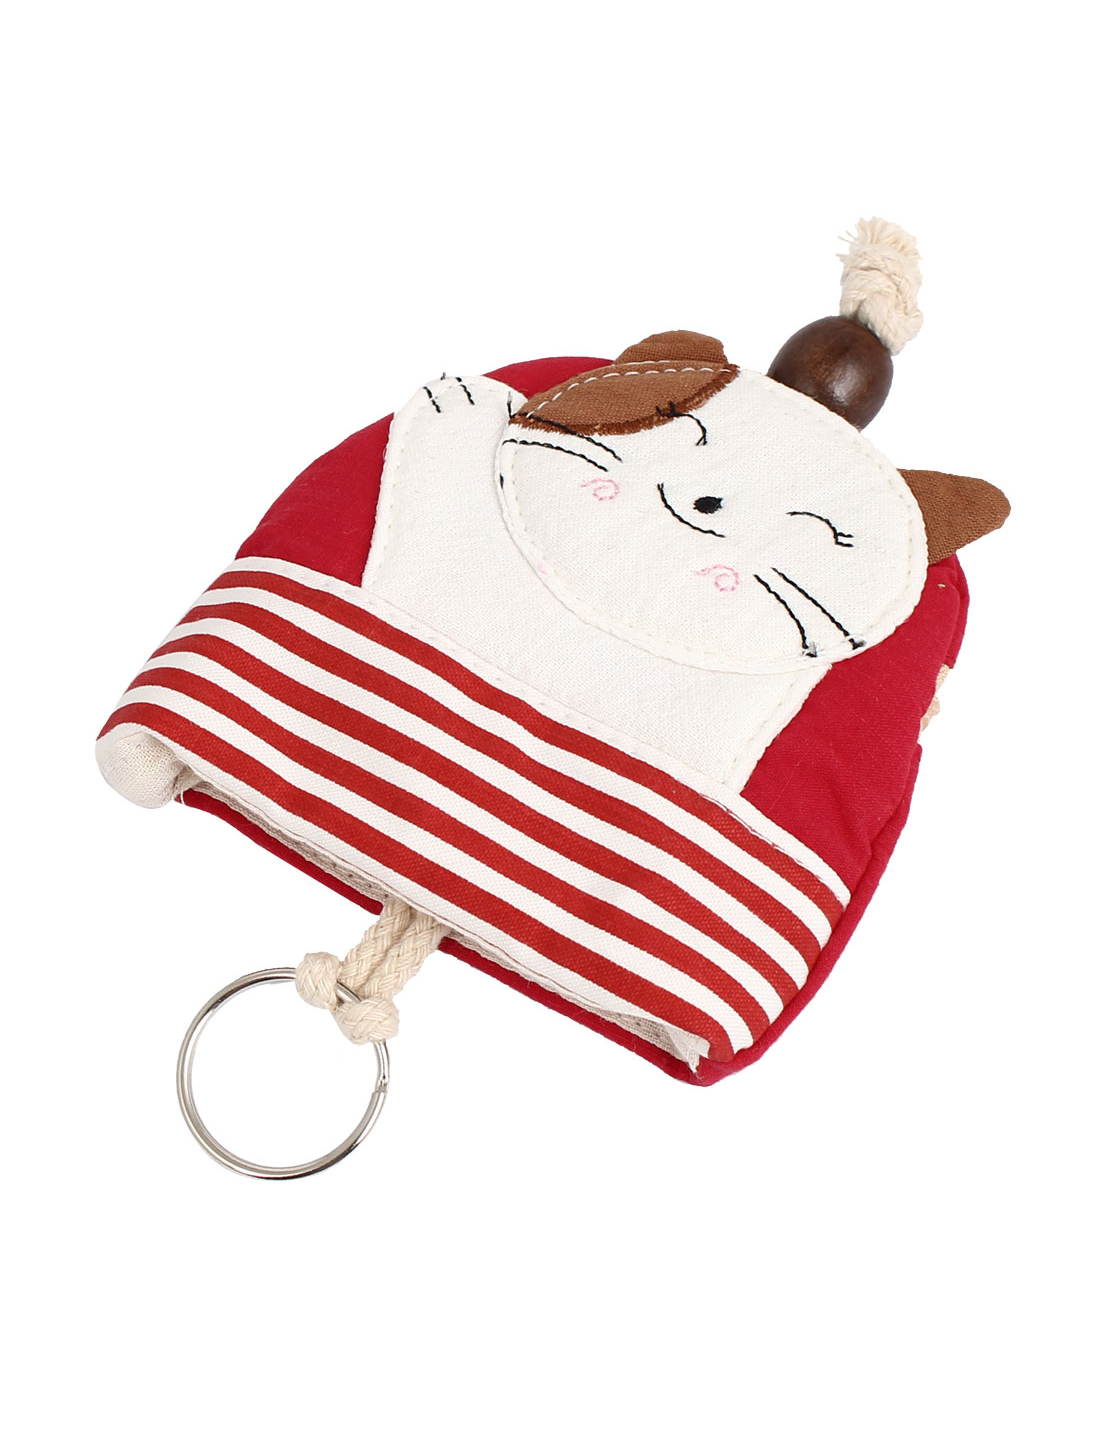 Lady Split Ring Strap Smile Cat Pattern Zip Up Coin Key Purse Bag Wallet Pouch Red